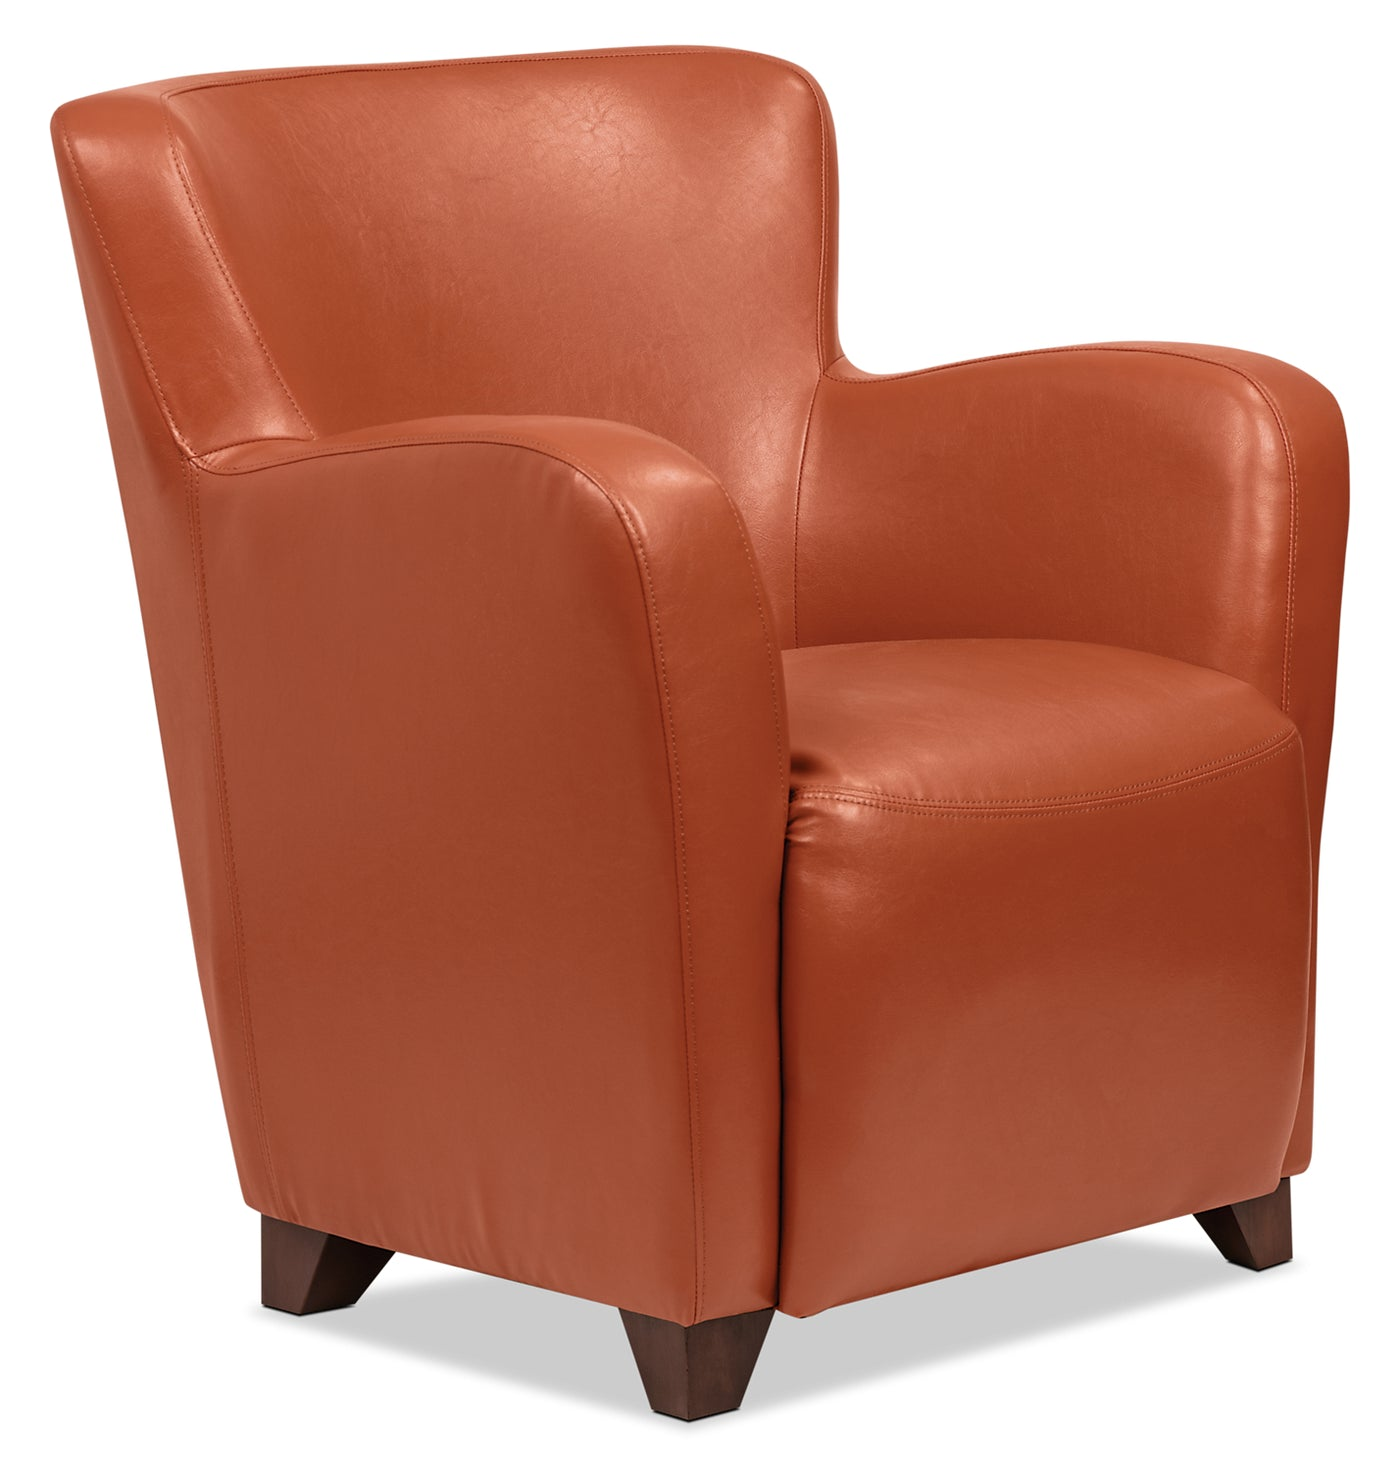 Remarkable Zello Bonded Leather Accent Chair Spice Ibusinesslaw Wood Chair Design Ideas Ibusinesslaworg